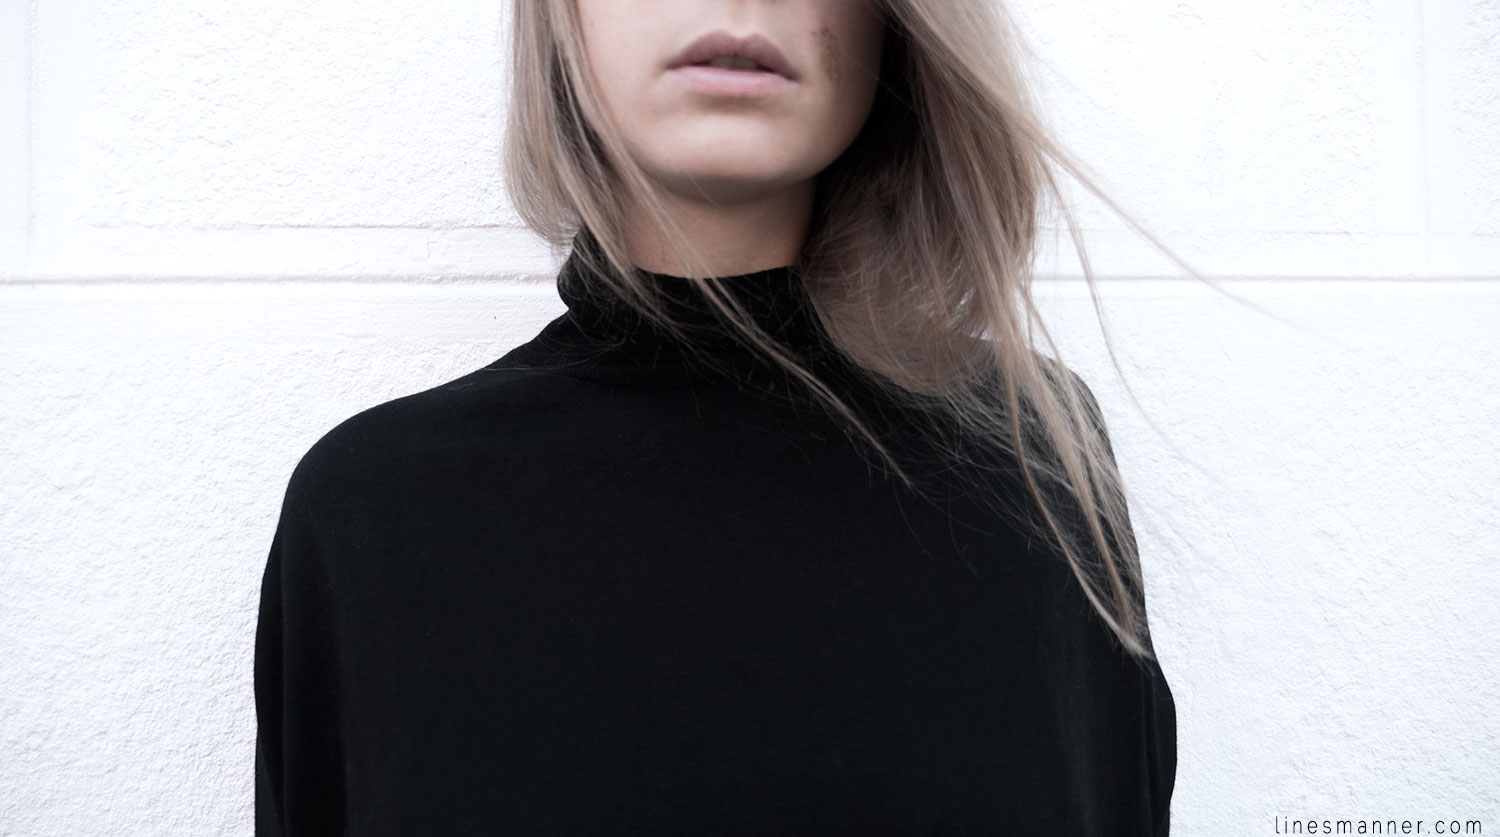 Lines-Manner-Minimalism-Details-Black-All_black_everything-Simplicity-Timeless-Modern-Monochrome-Essential-Basics-Staples_pieces-Outfit-Design-Effortless-16